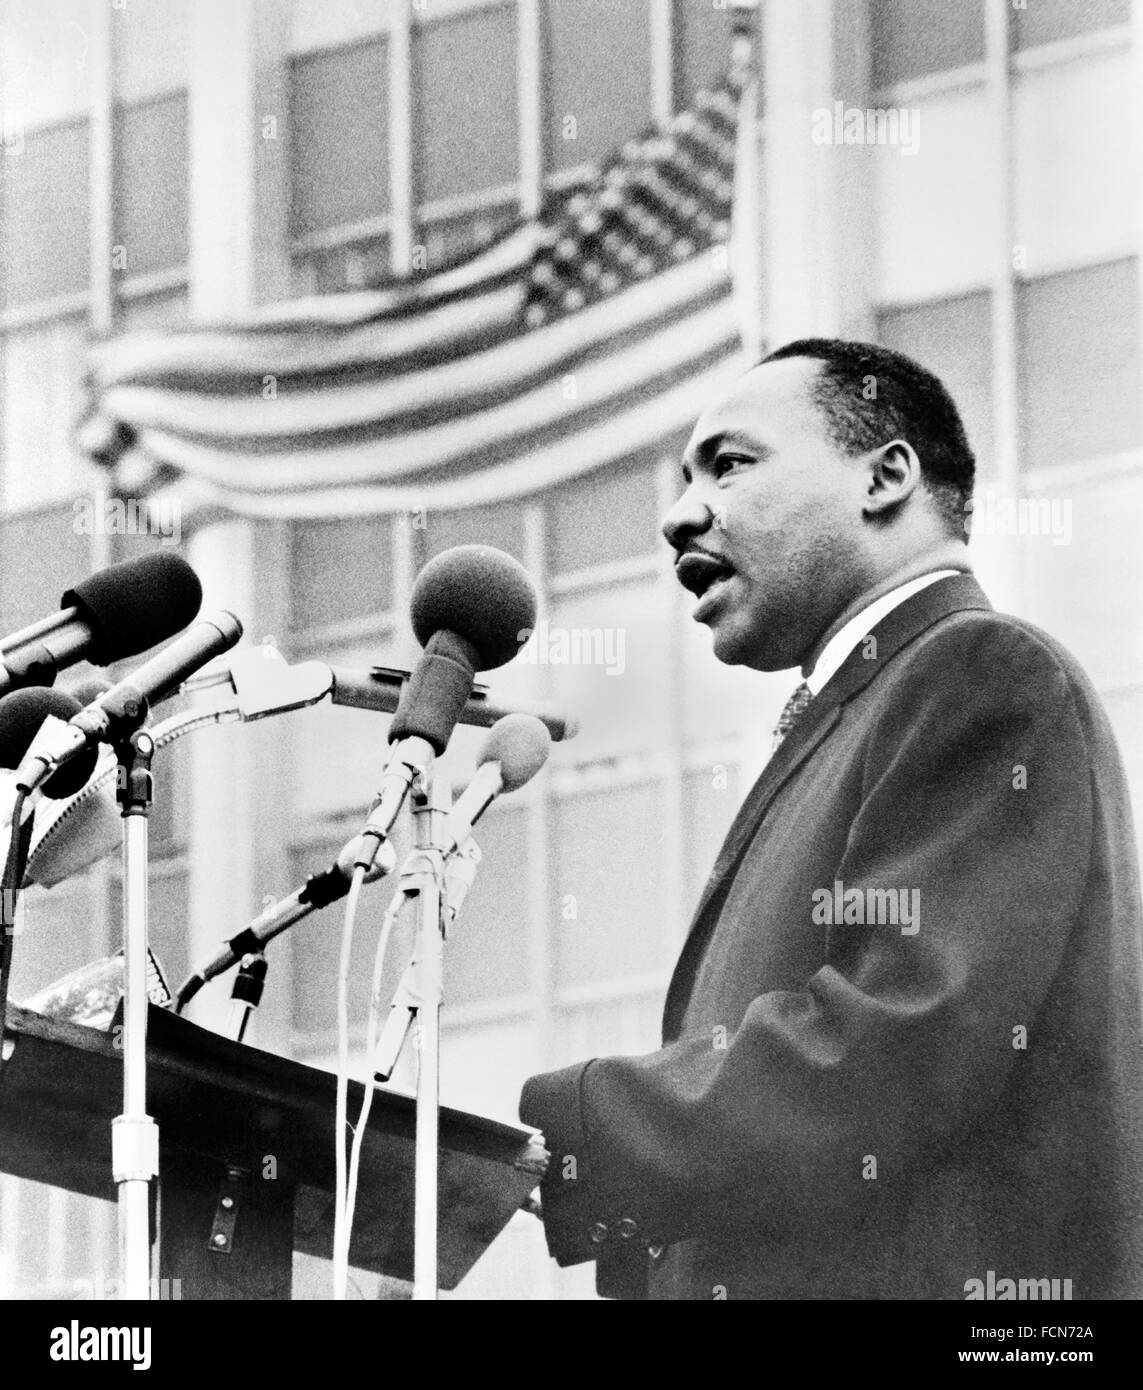 Martin Luther King. Dr  Martin Luther King Jr speaking at an anti-war demonstration in New York City, 1967 Stock Photo